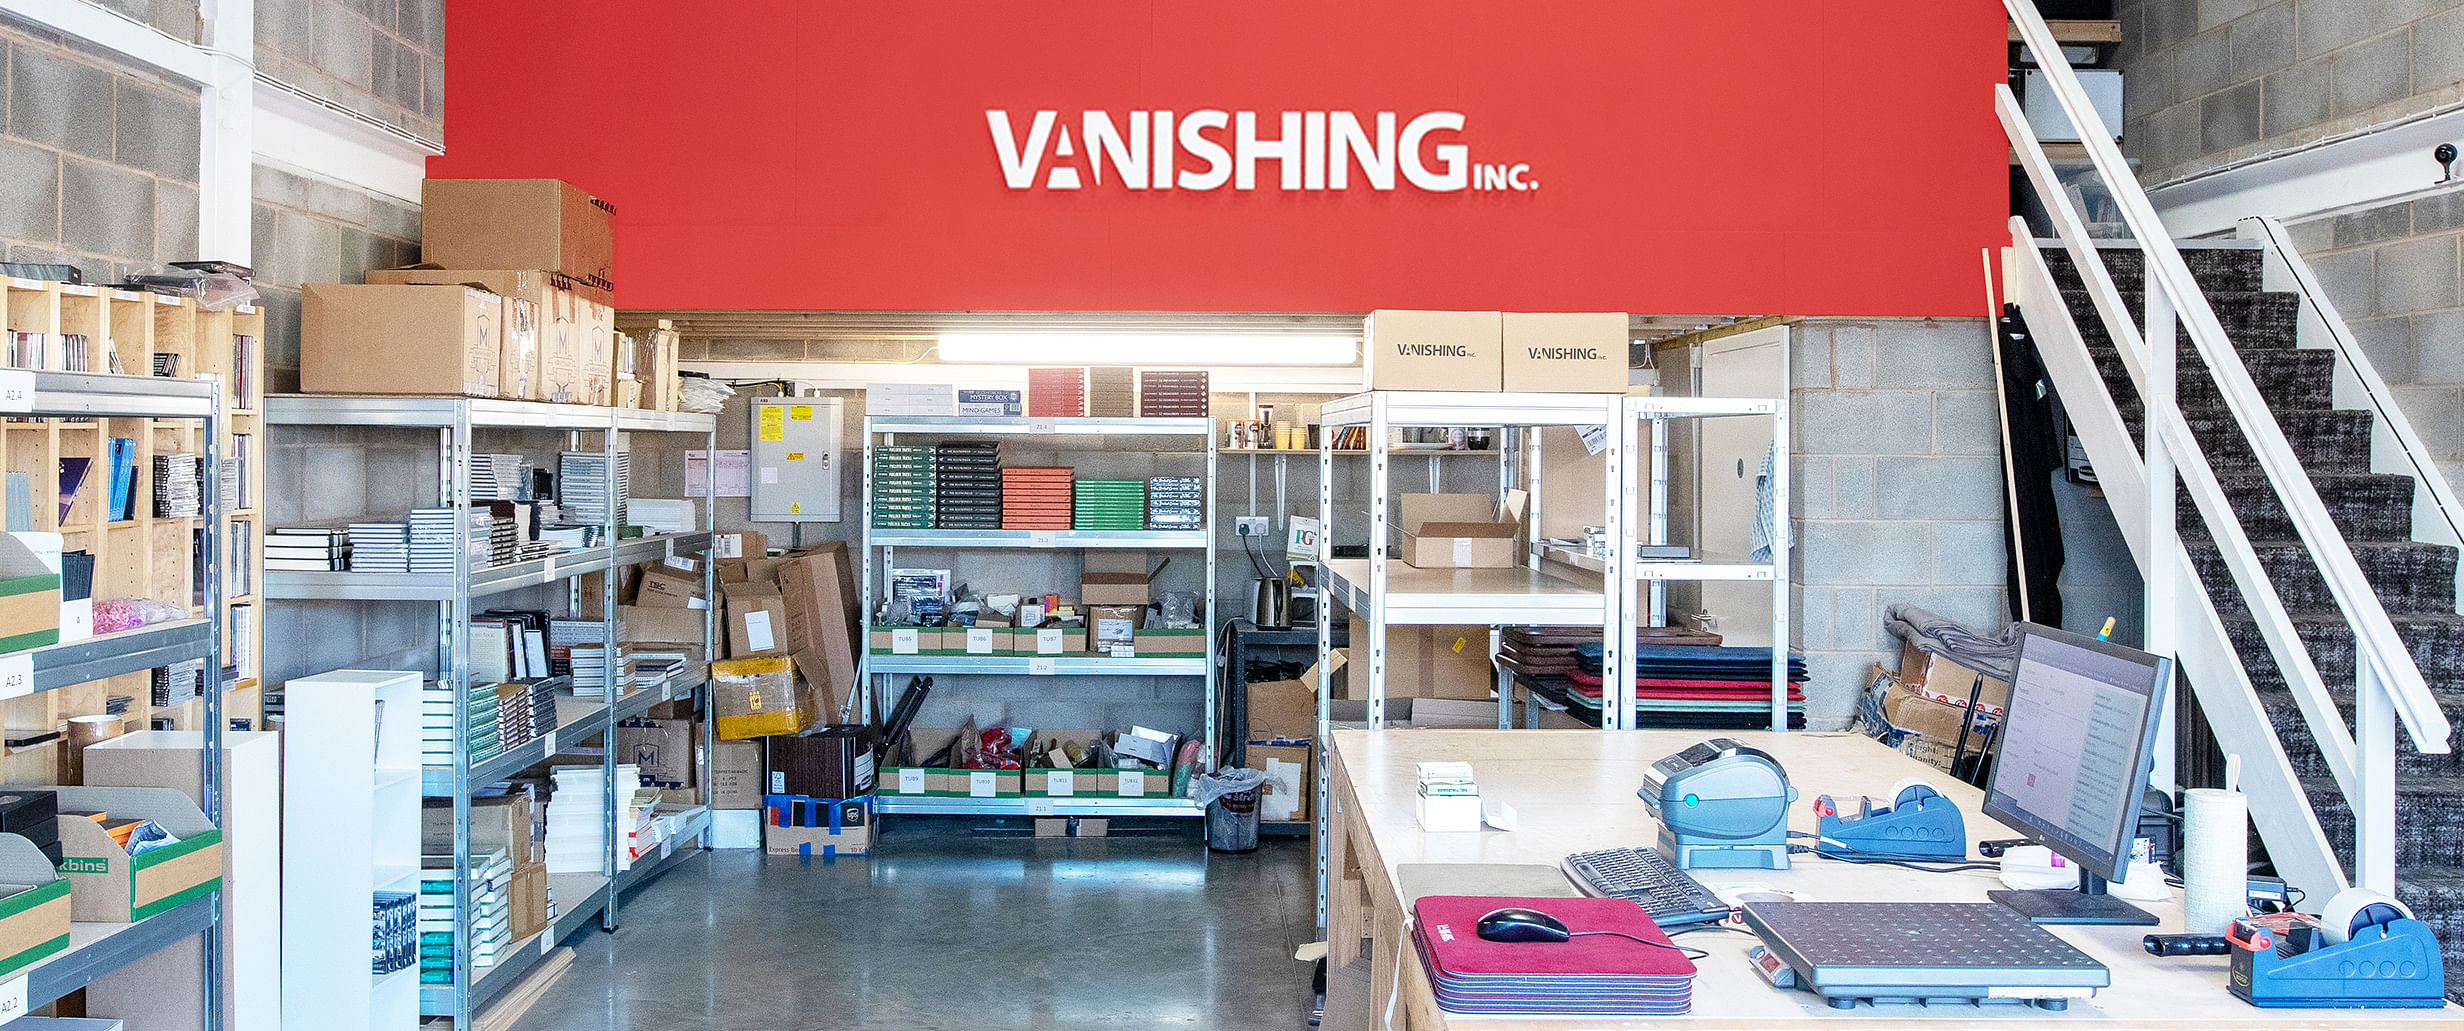 Vanishing Inc. Warehouse